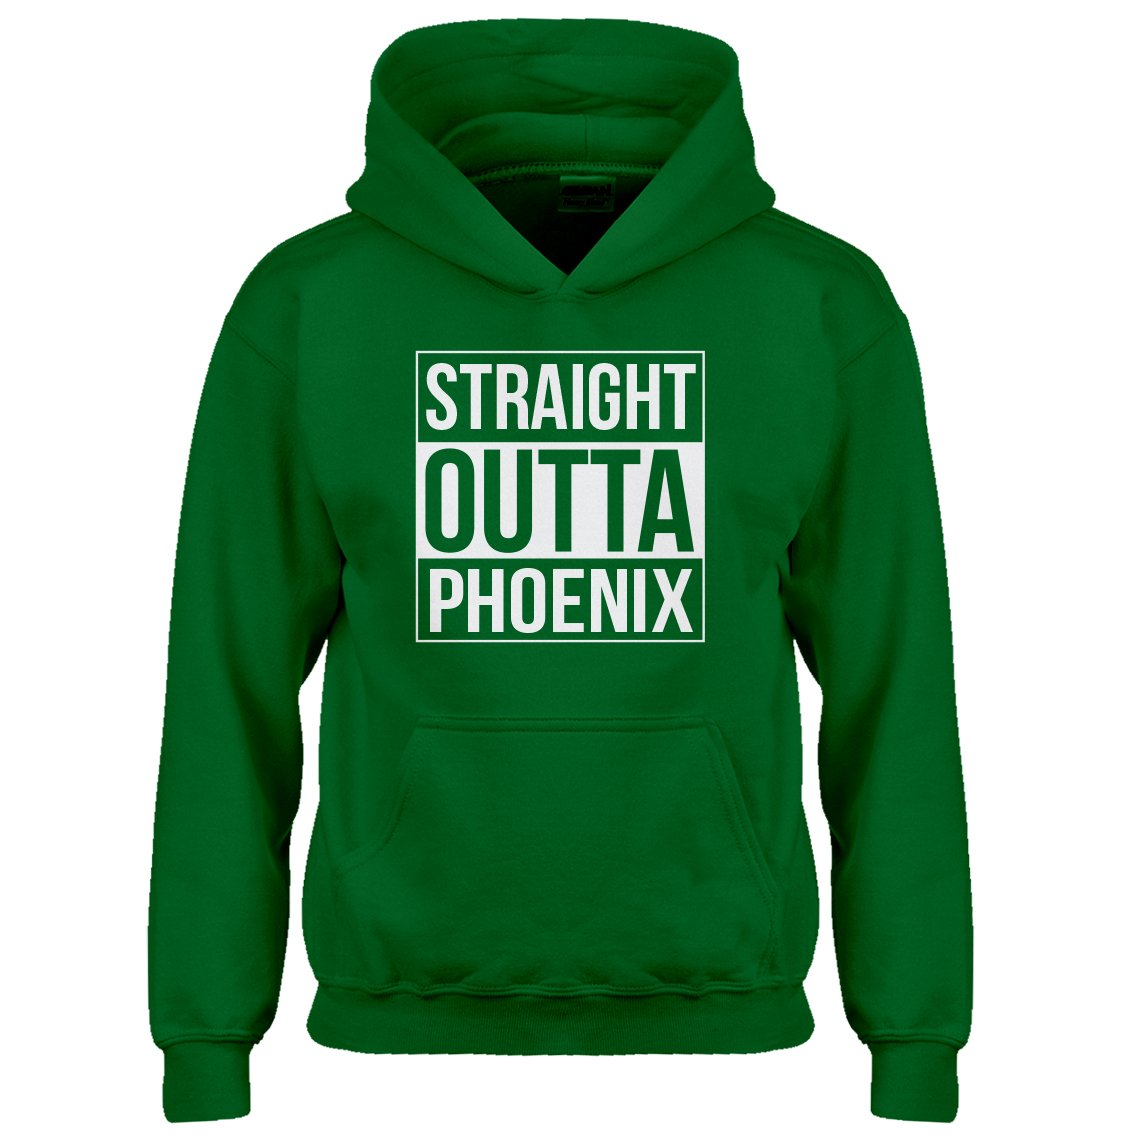 Indica Plateau Youth Straight Outta Phoenix Kids Hoodie